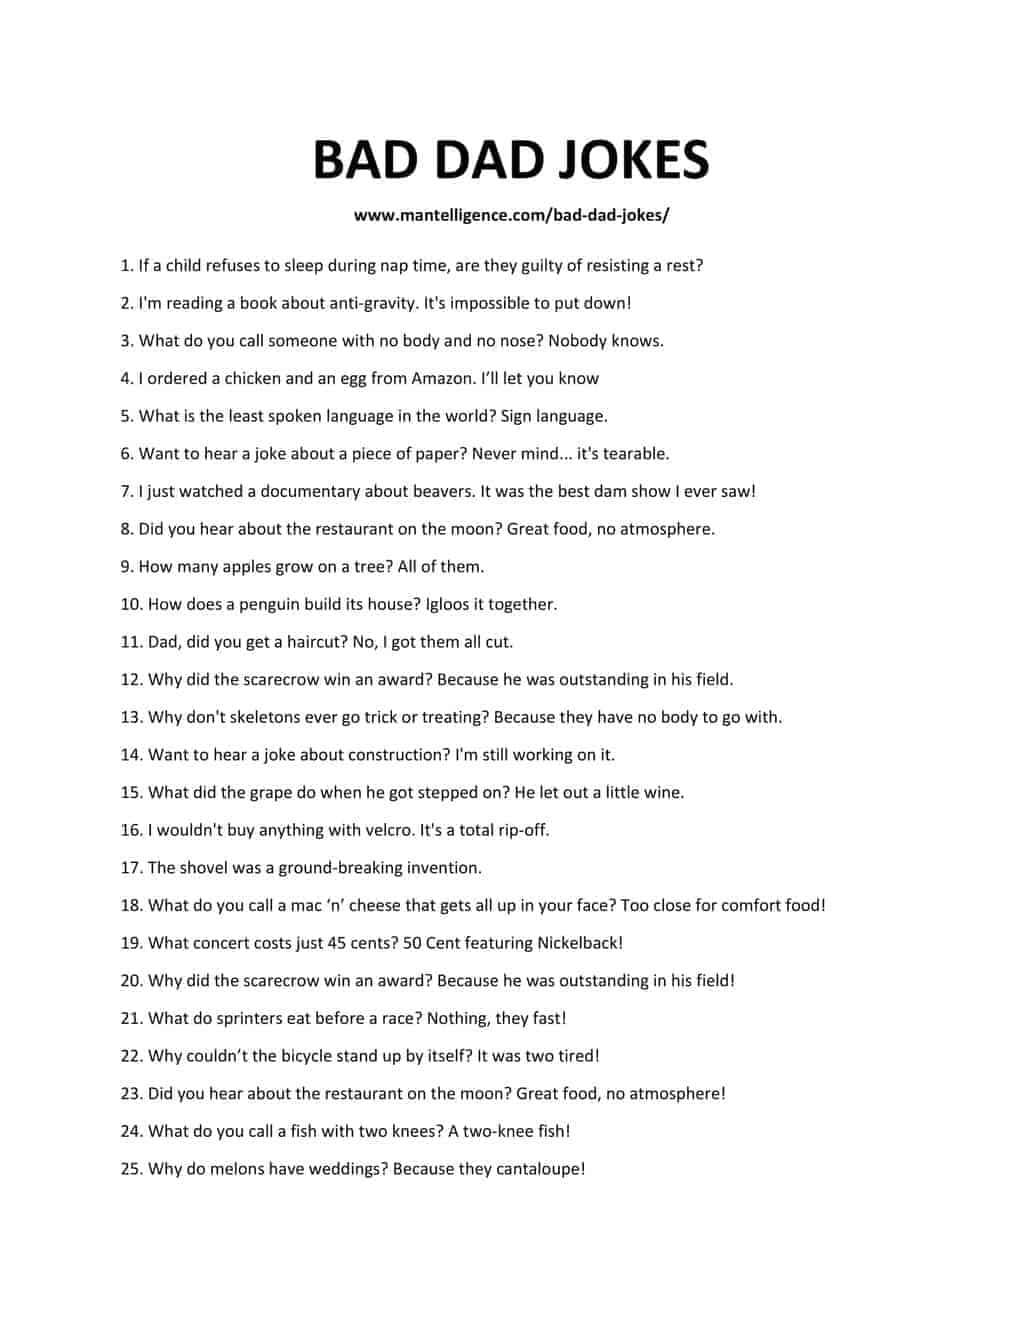 BAD_DAD_JOKES-1[1]